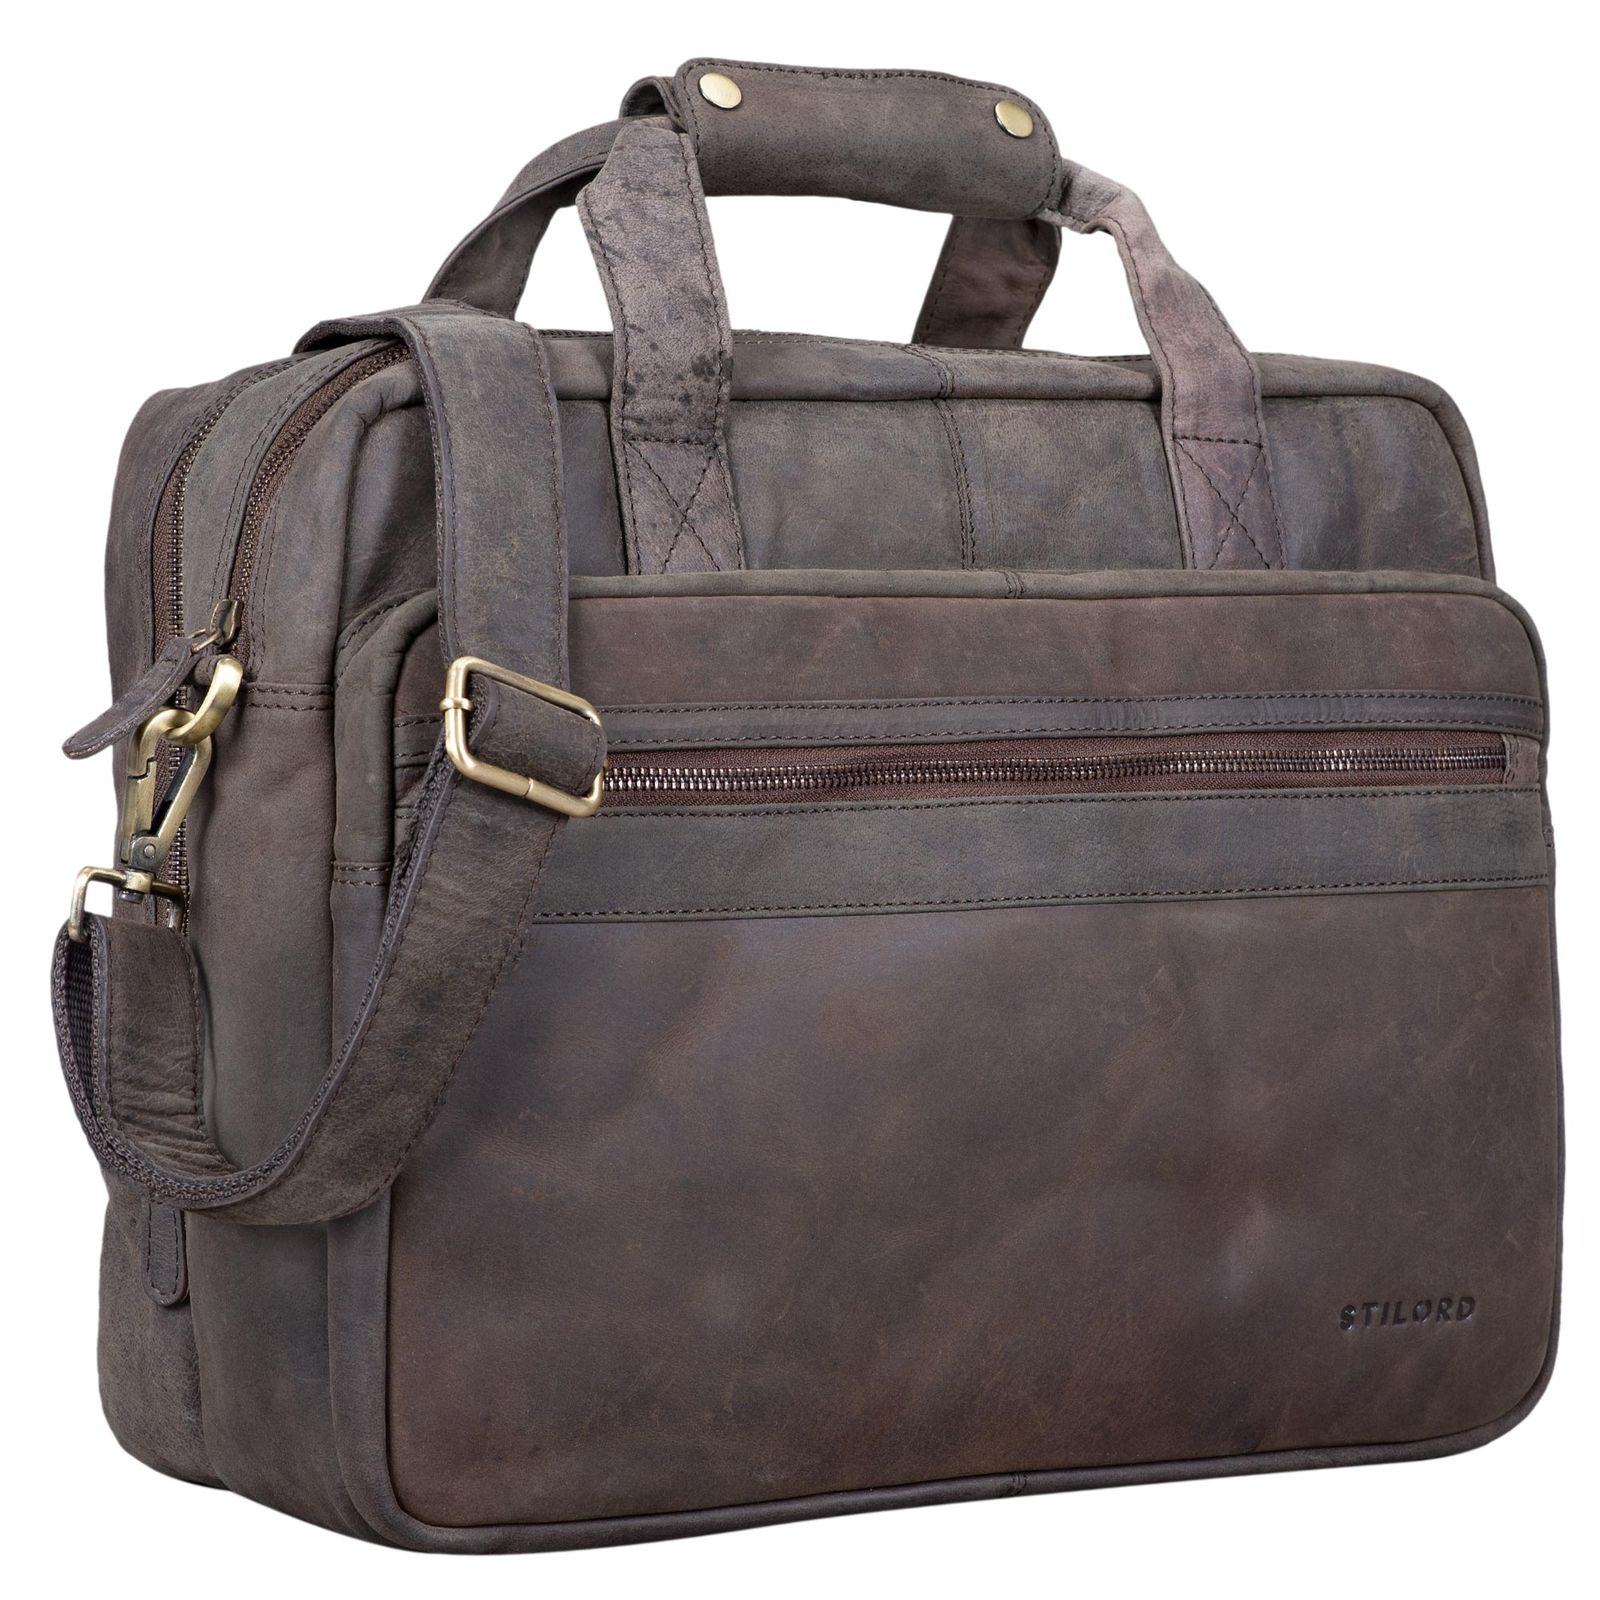 "STILORD ""Adventure"" Lehrertasche Herren Damen Aktentasche Office Büro Schulter- oder Umhängetasche Businesstasche für Laptop Leder  - Bild 14"